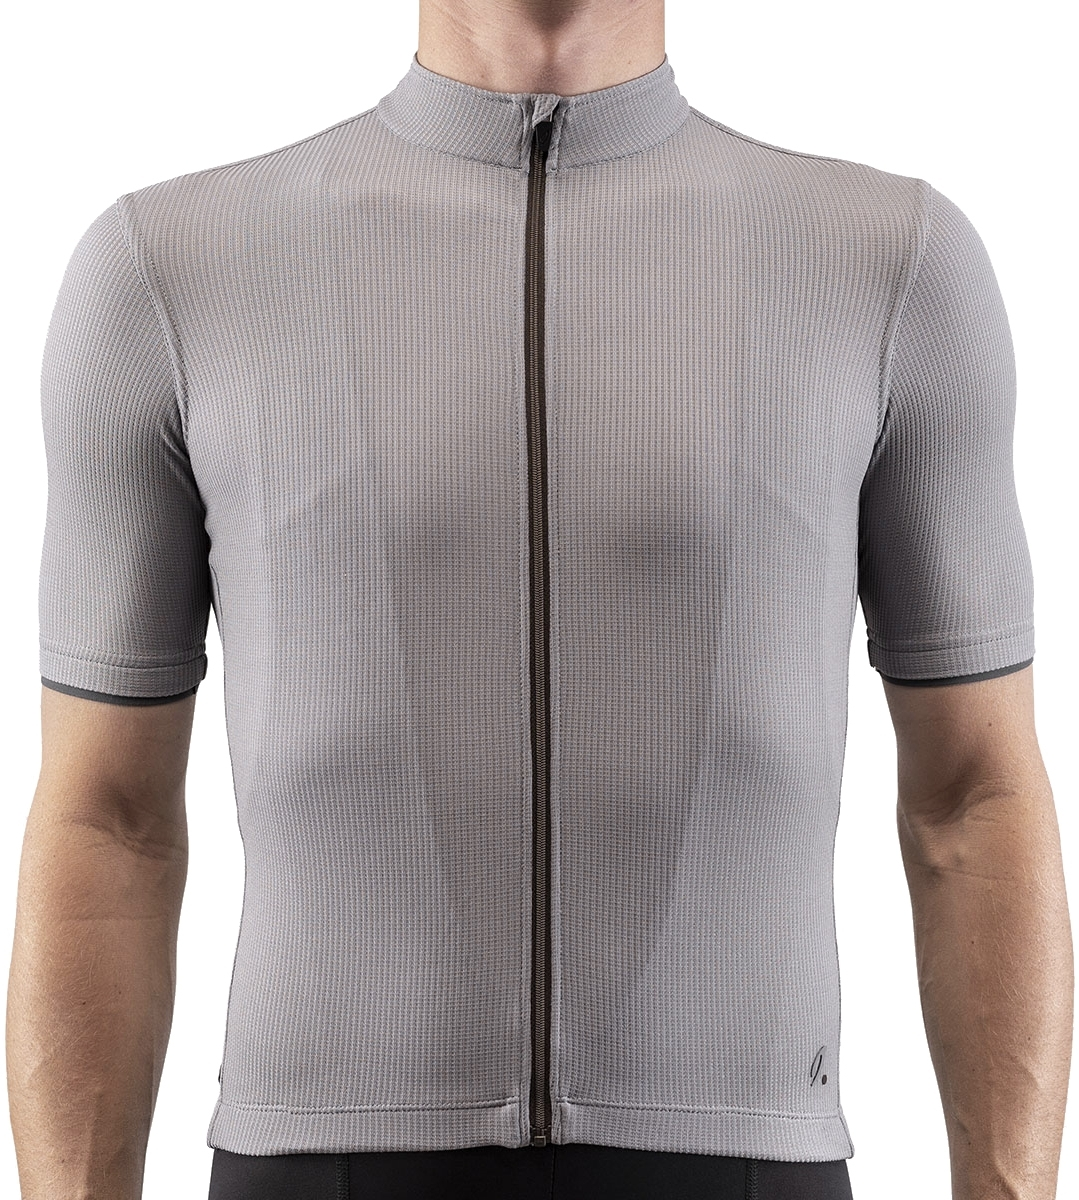 Woollight Jersey - quicksilver M